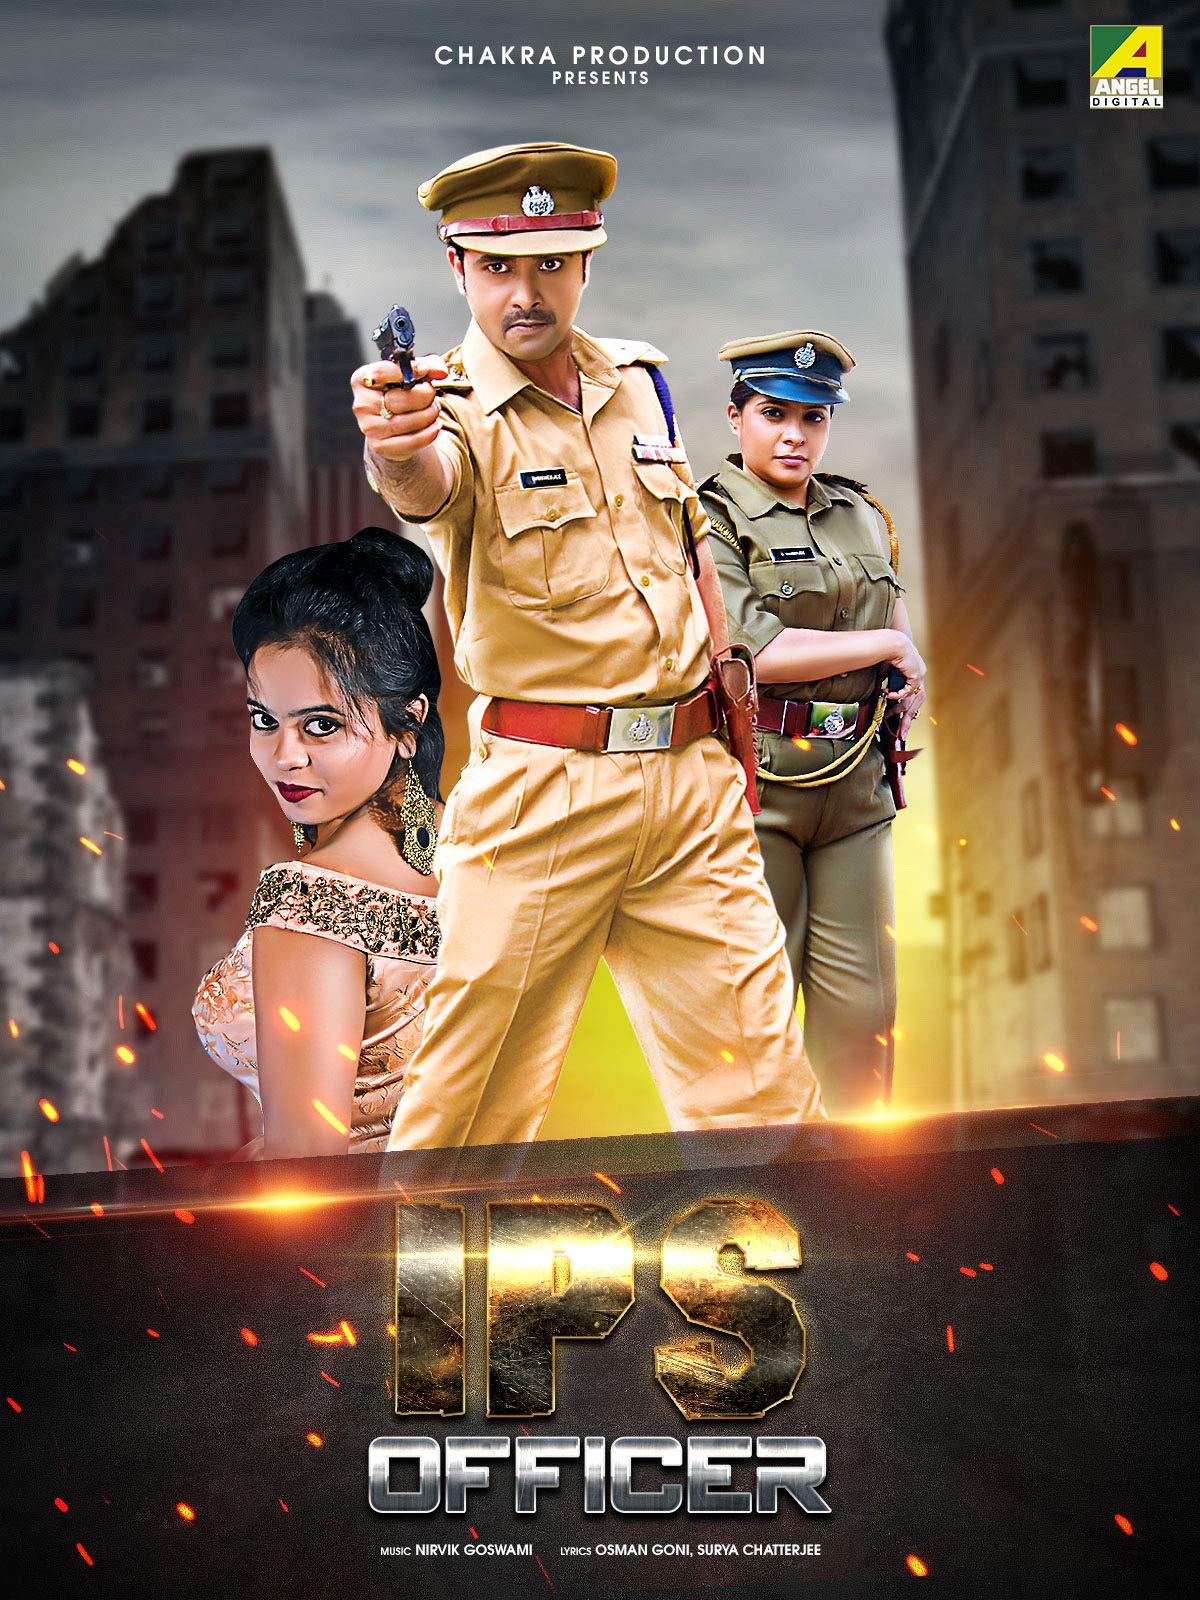 Ips Officer (2020) Bengali Movie 720p HDRip ESubs 700MB MKV